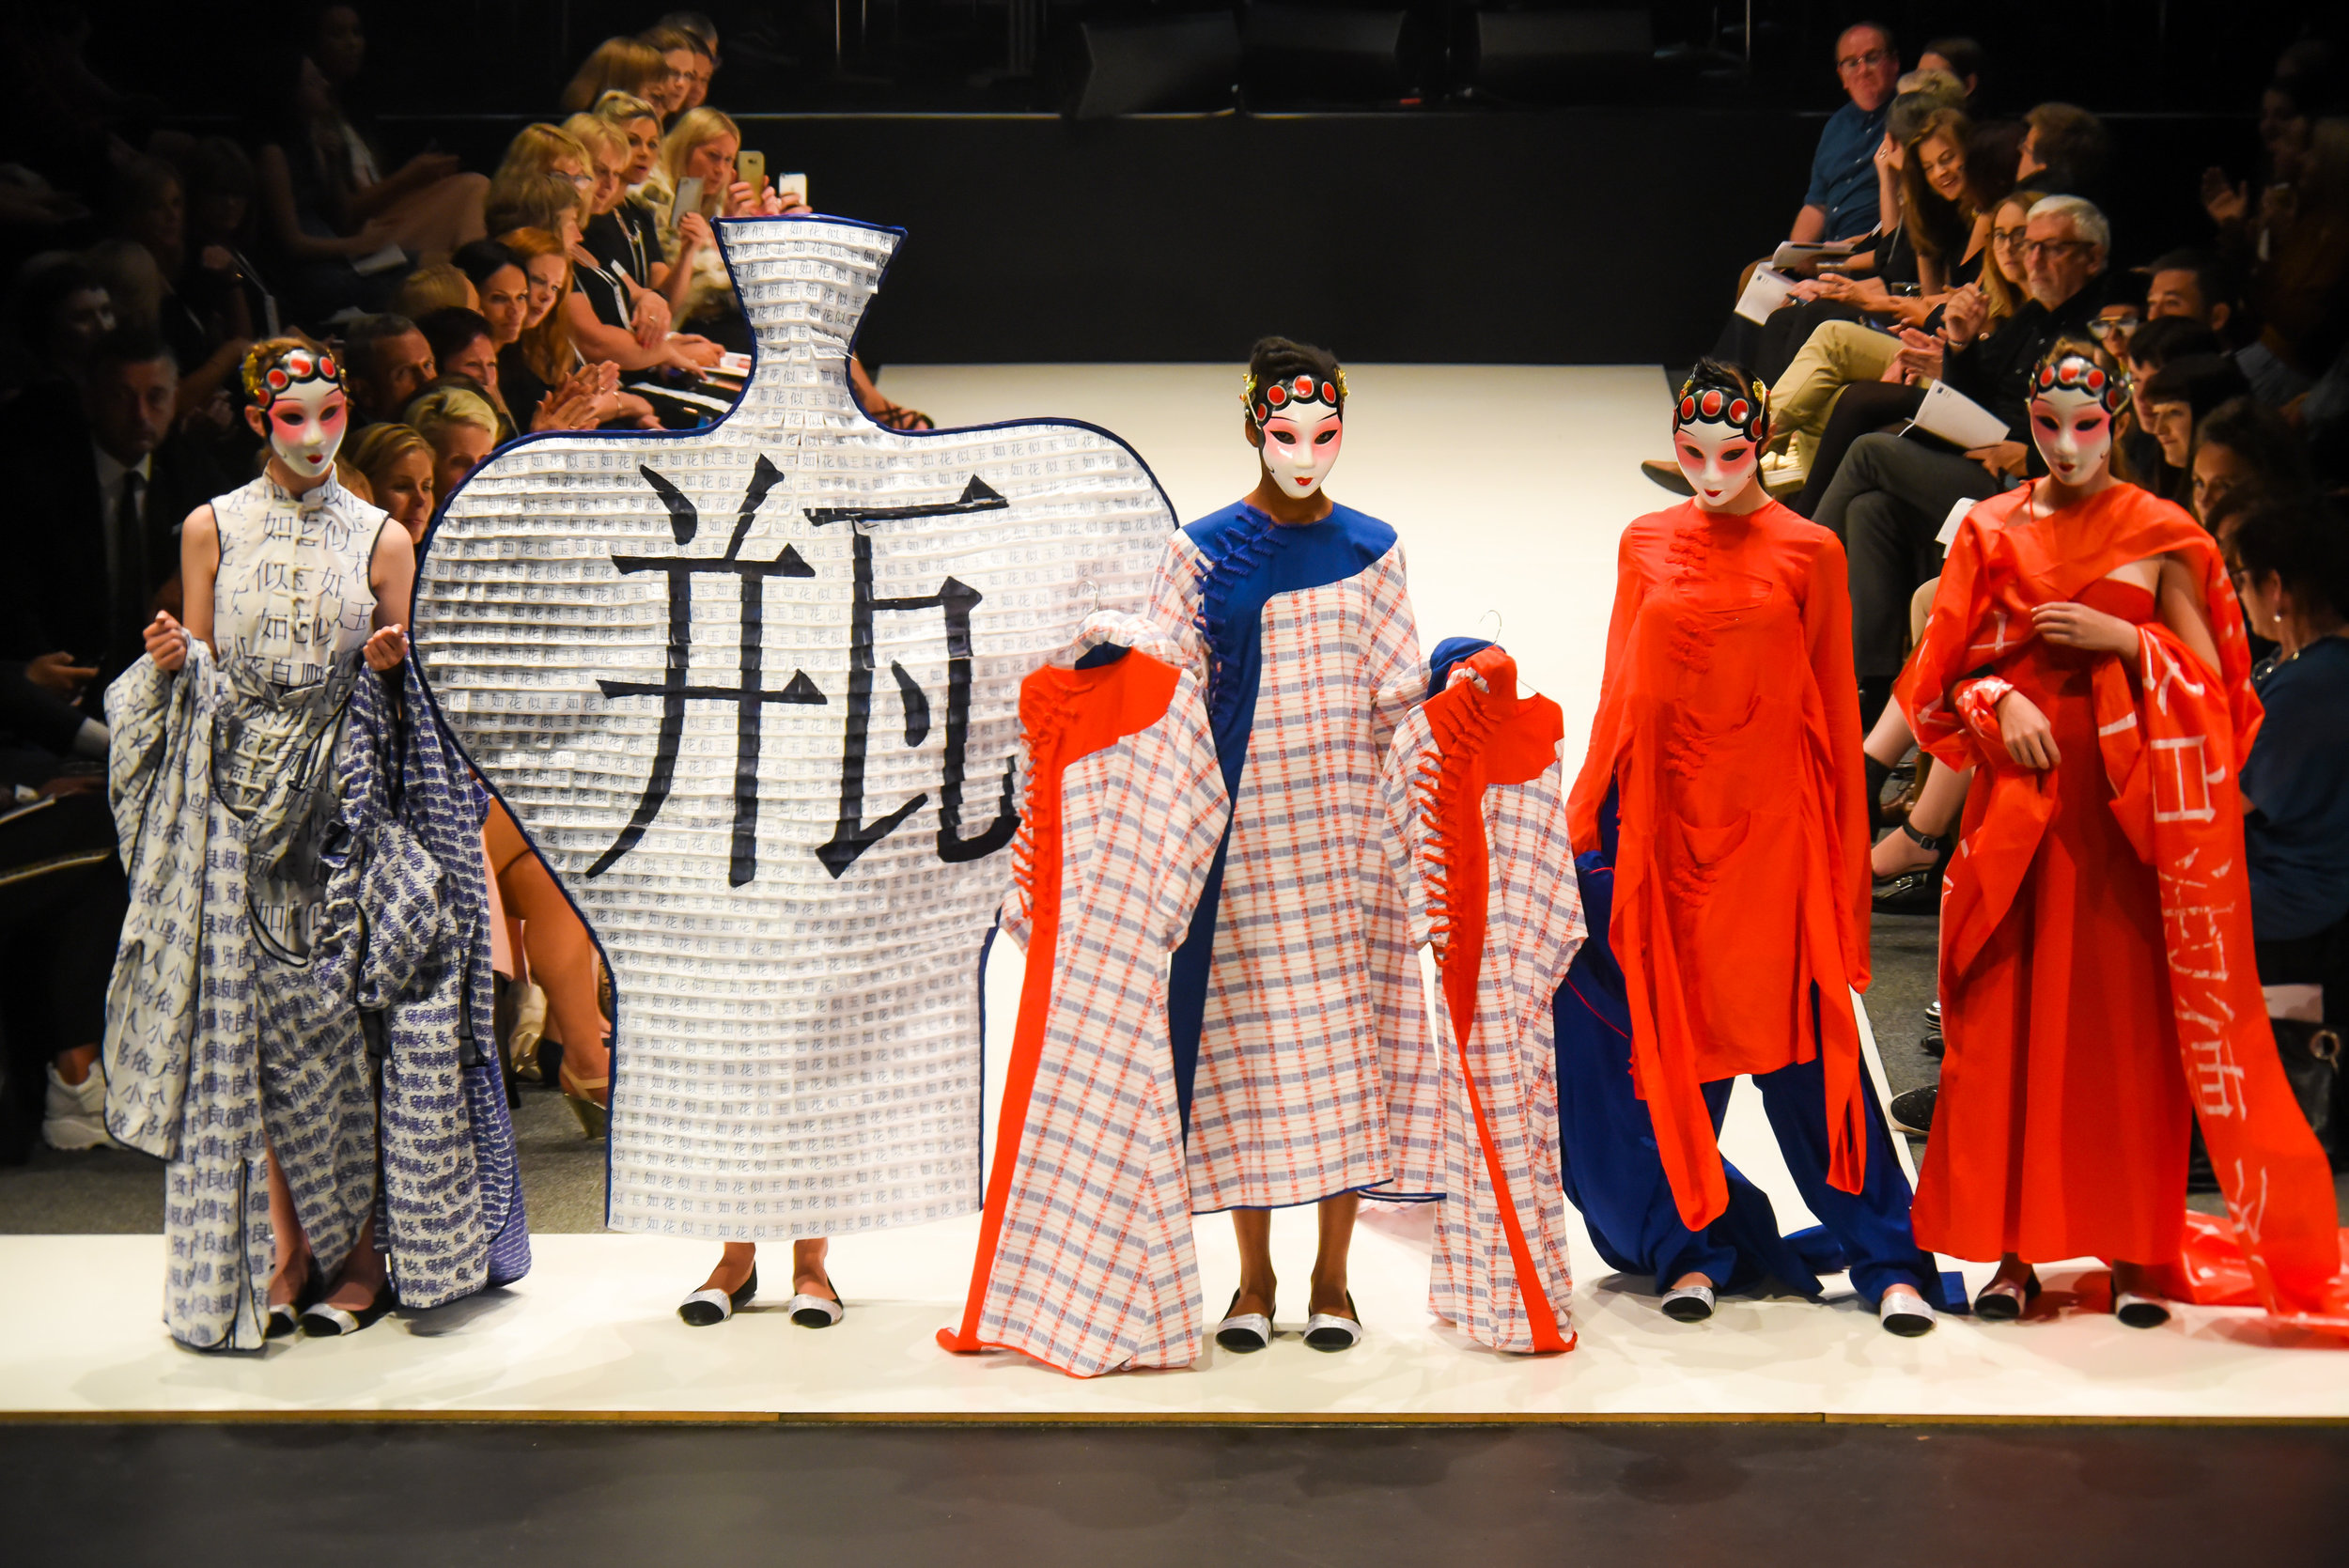 Betty Liu won second place with a collection exploring the commodification of Chinese culture. Photo: Chris Sullivan.